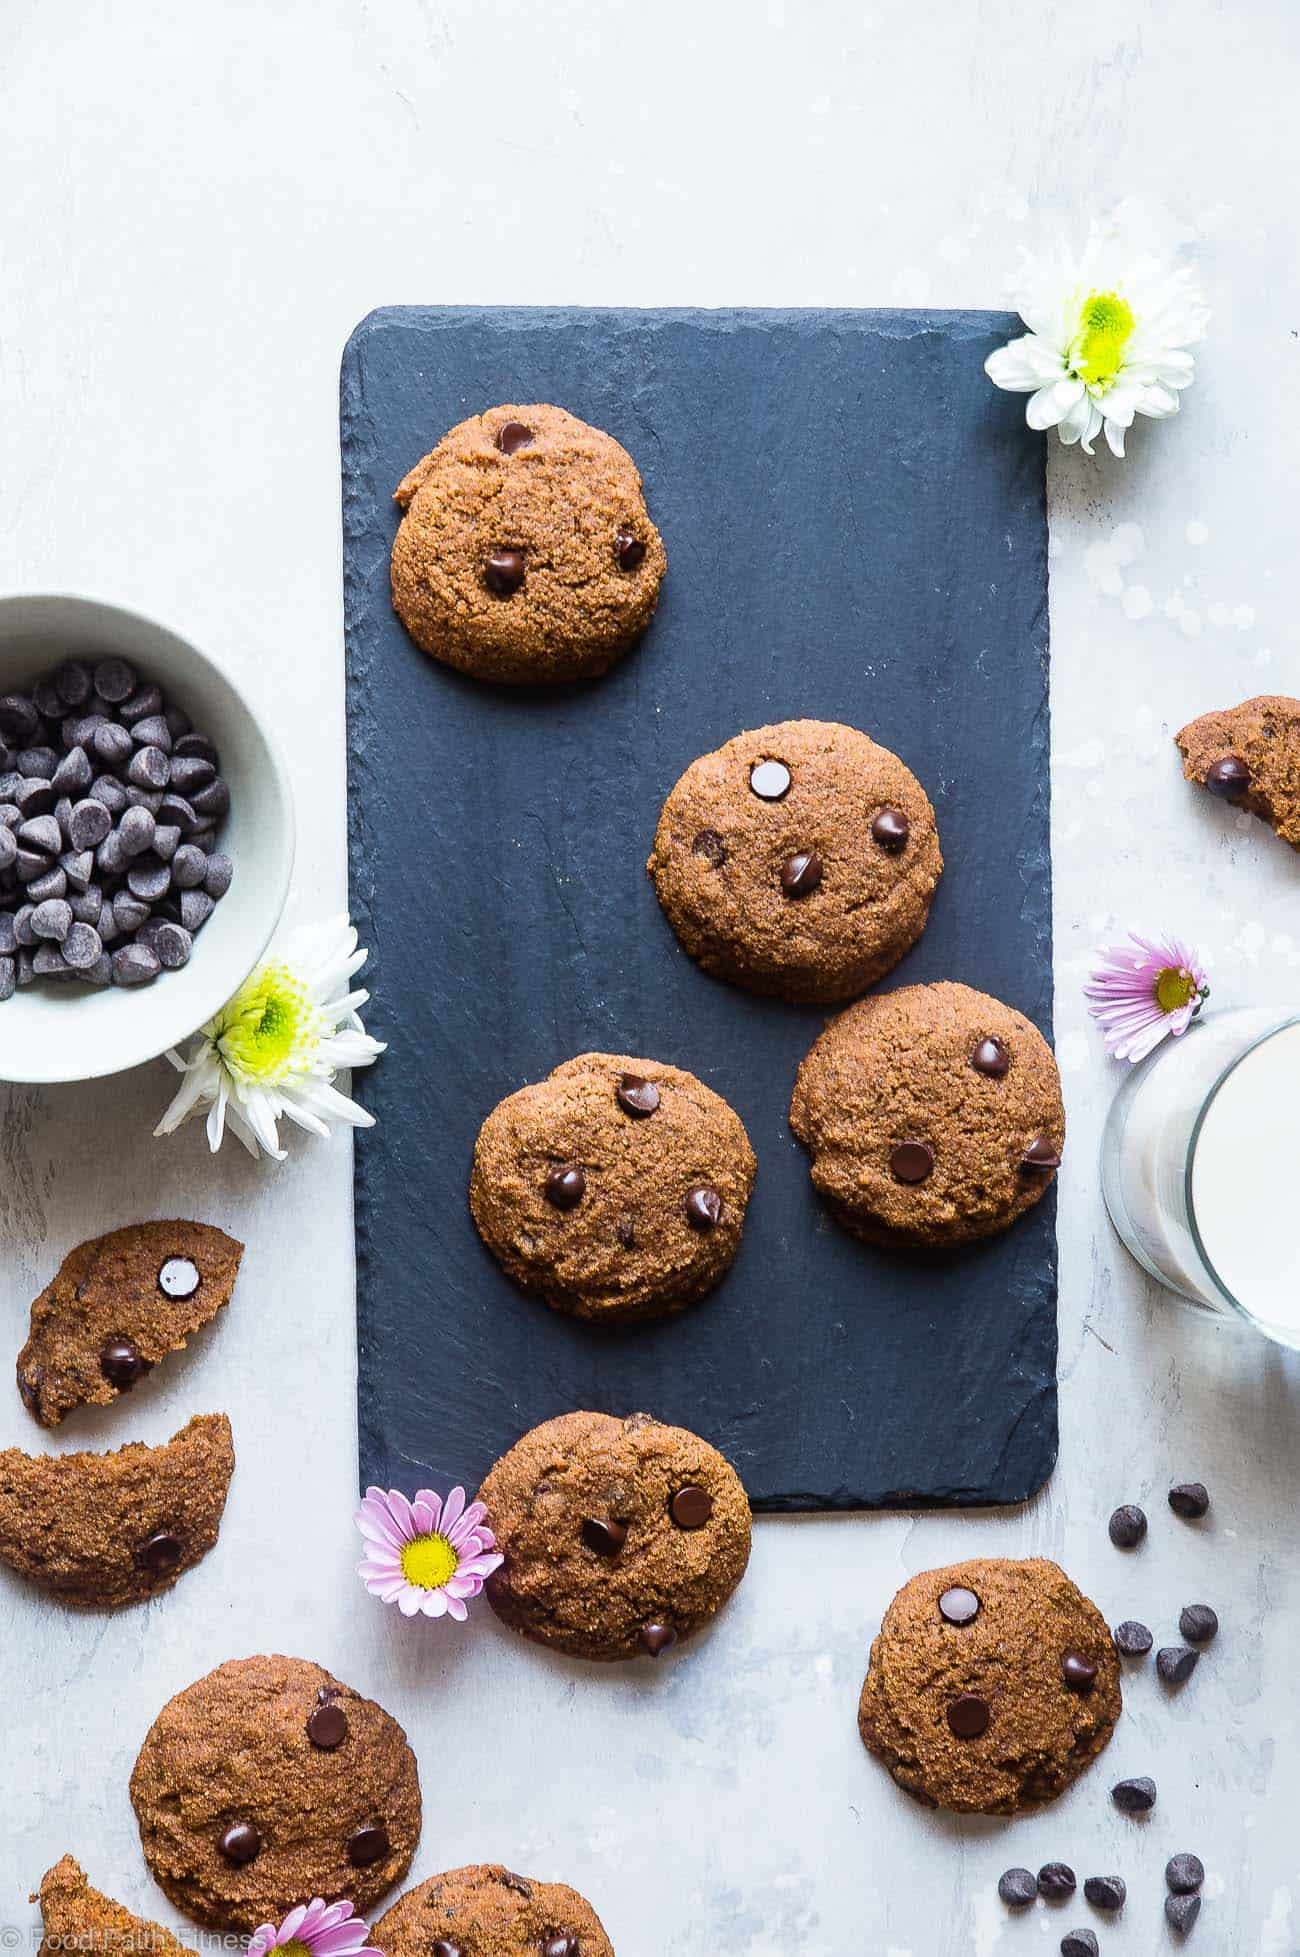 Paleo Coconut Flour Chocolate Chip Cookies -These are the best coconut flour cookies! Paleo friendly cookies with coconut flour are buttery, soft, chewy and SO rich and chocolaty! You won't believe they are gluten, grain and refined sugar free! | Foodfaithfitness.com | @FoodFaithFit